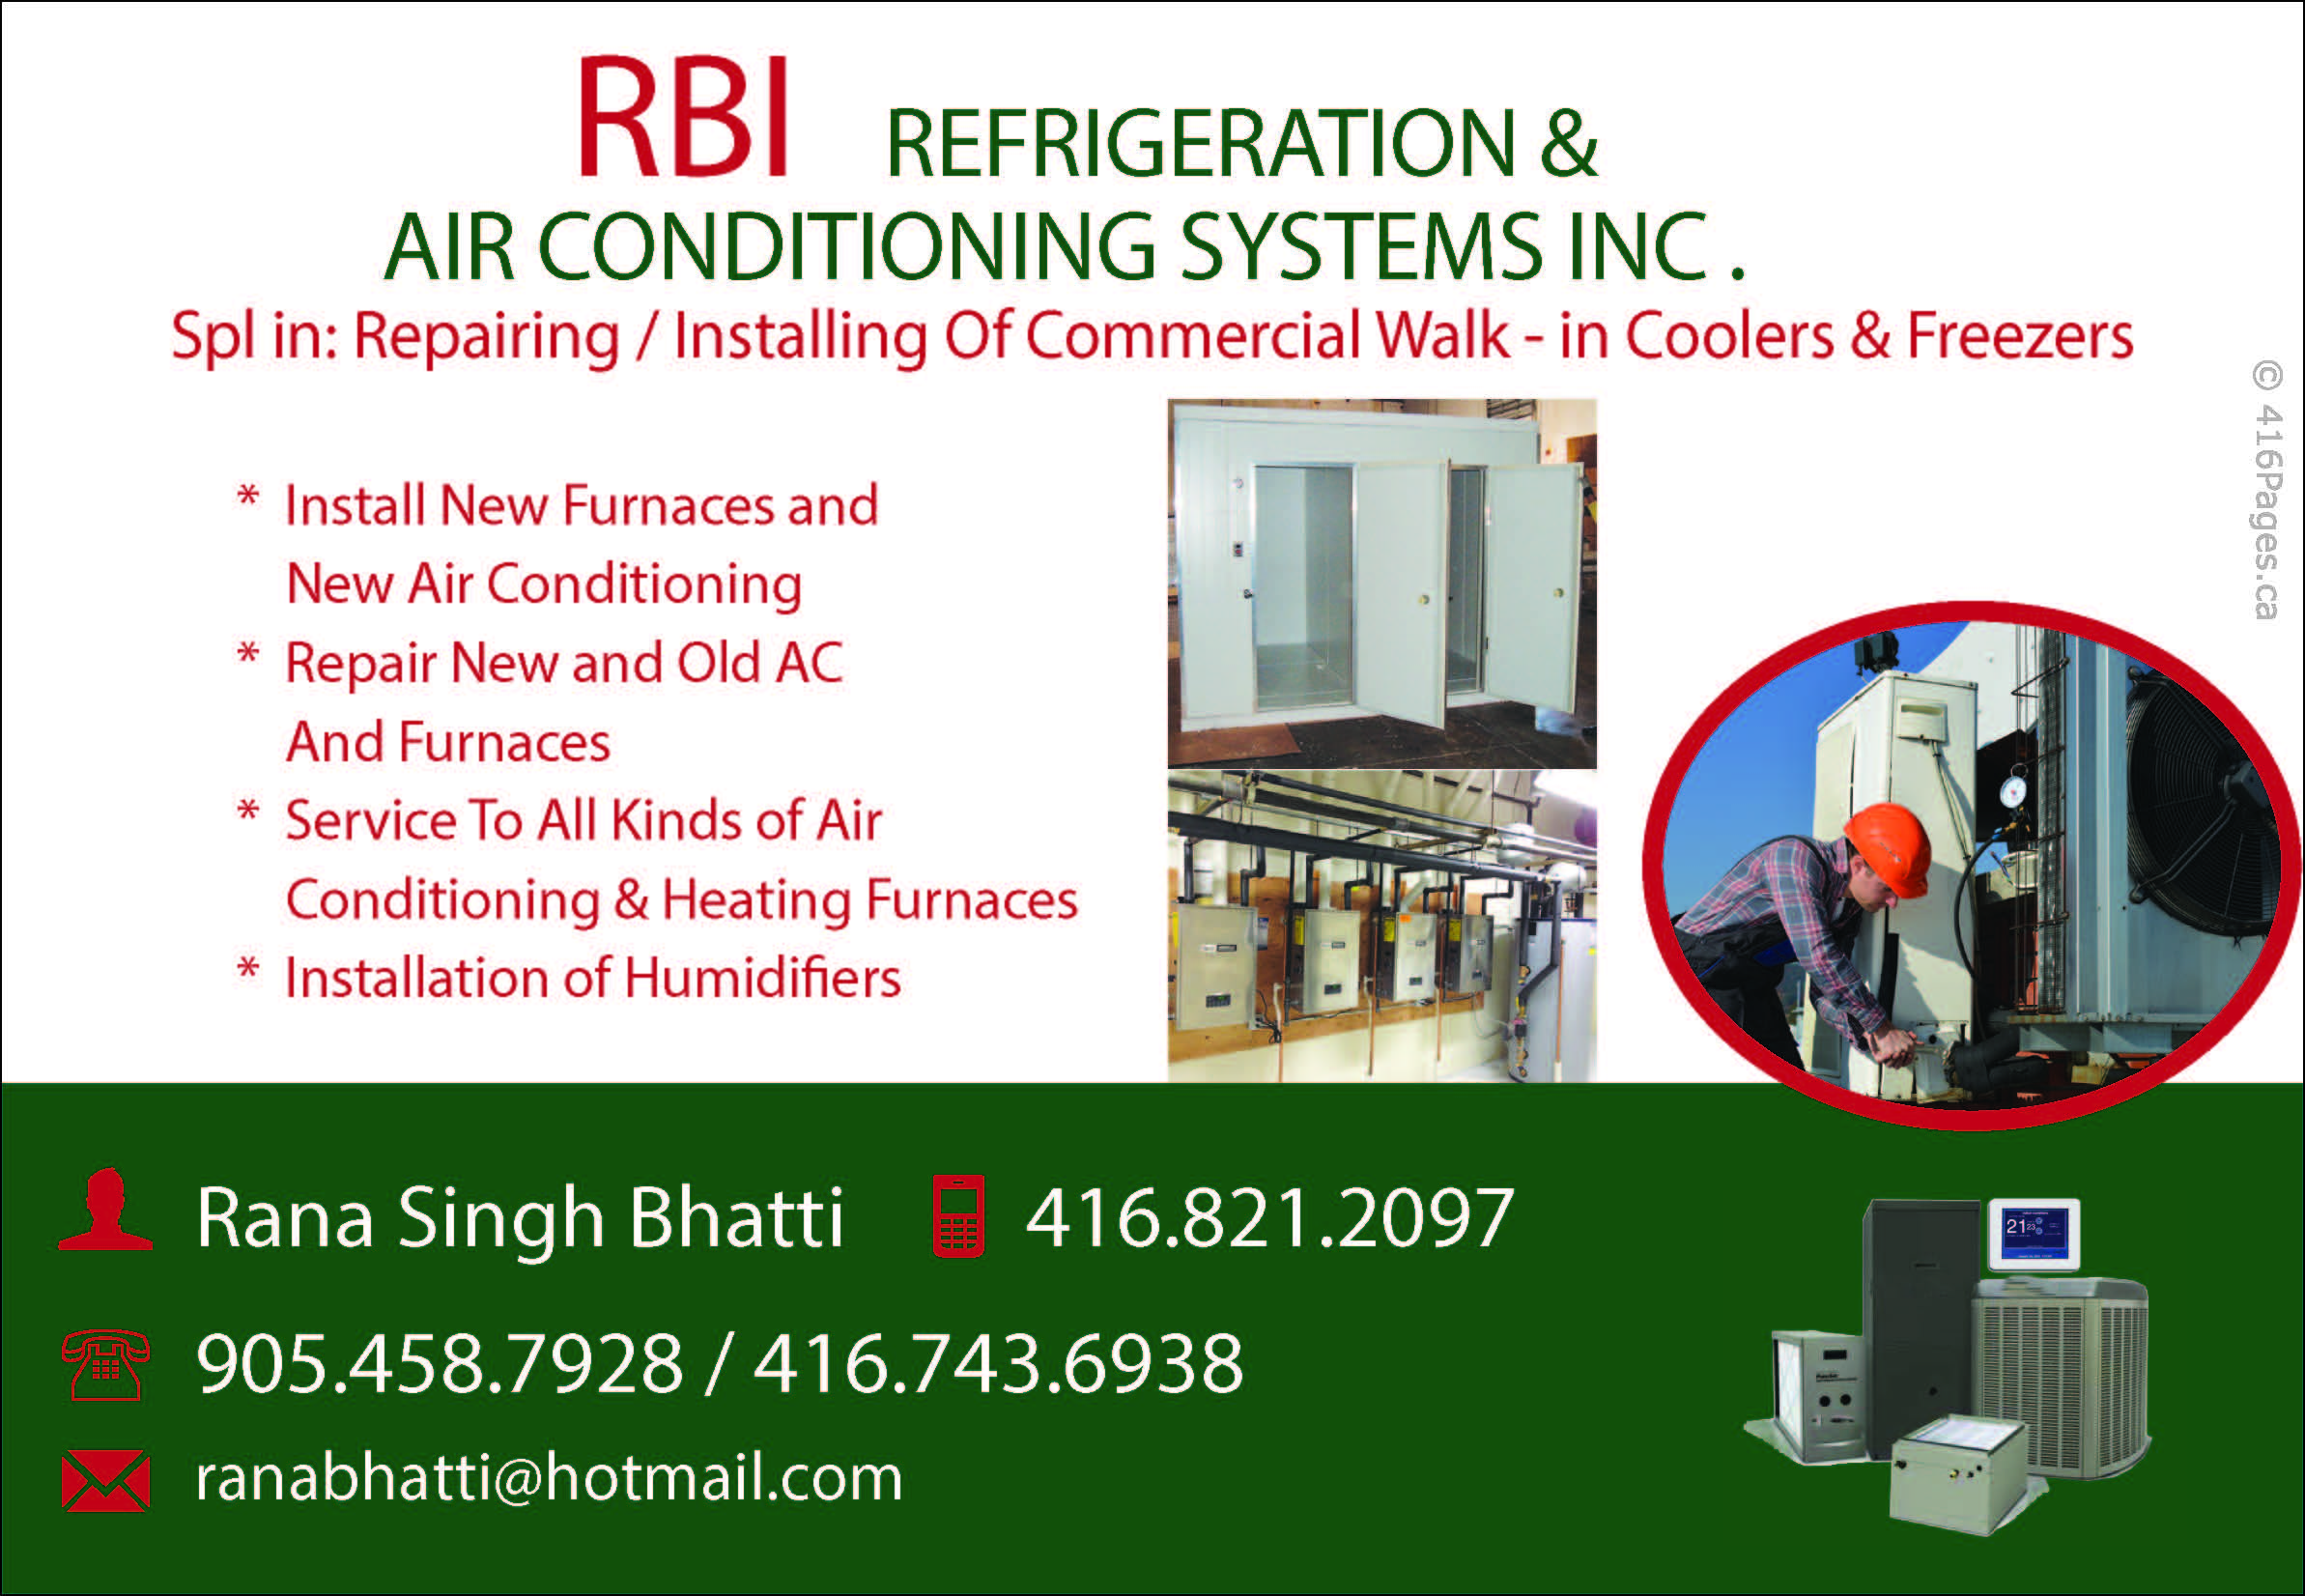 refrigeration and air conditioning essay Refrigeration and air conditioning assignment writing help service and refrigeration and air conditioning essay writing help refrigeration and air conditioning writing service introduction in typical usage, an ac system is a gadget that eliminates heat from the air inside a struc.